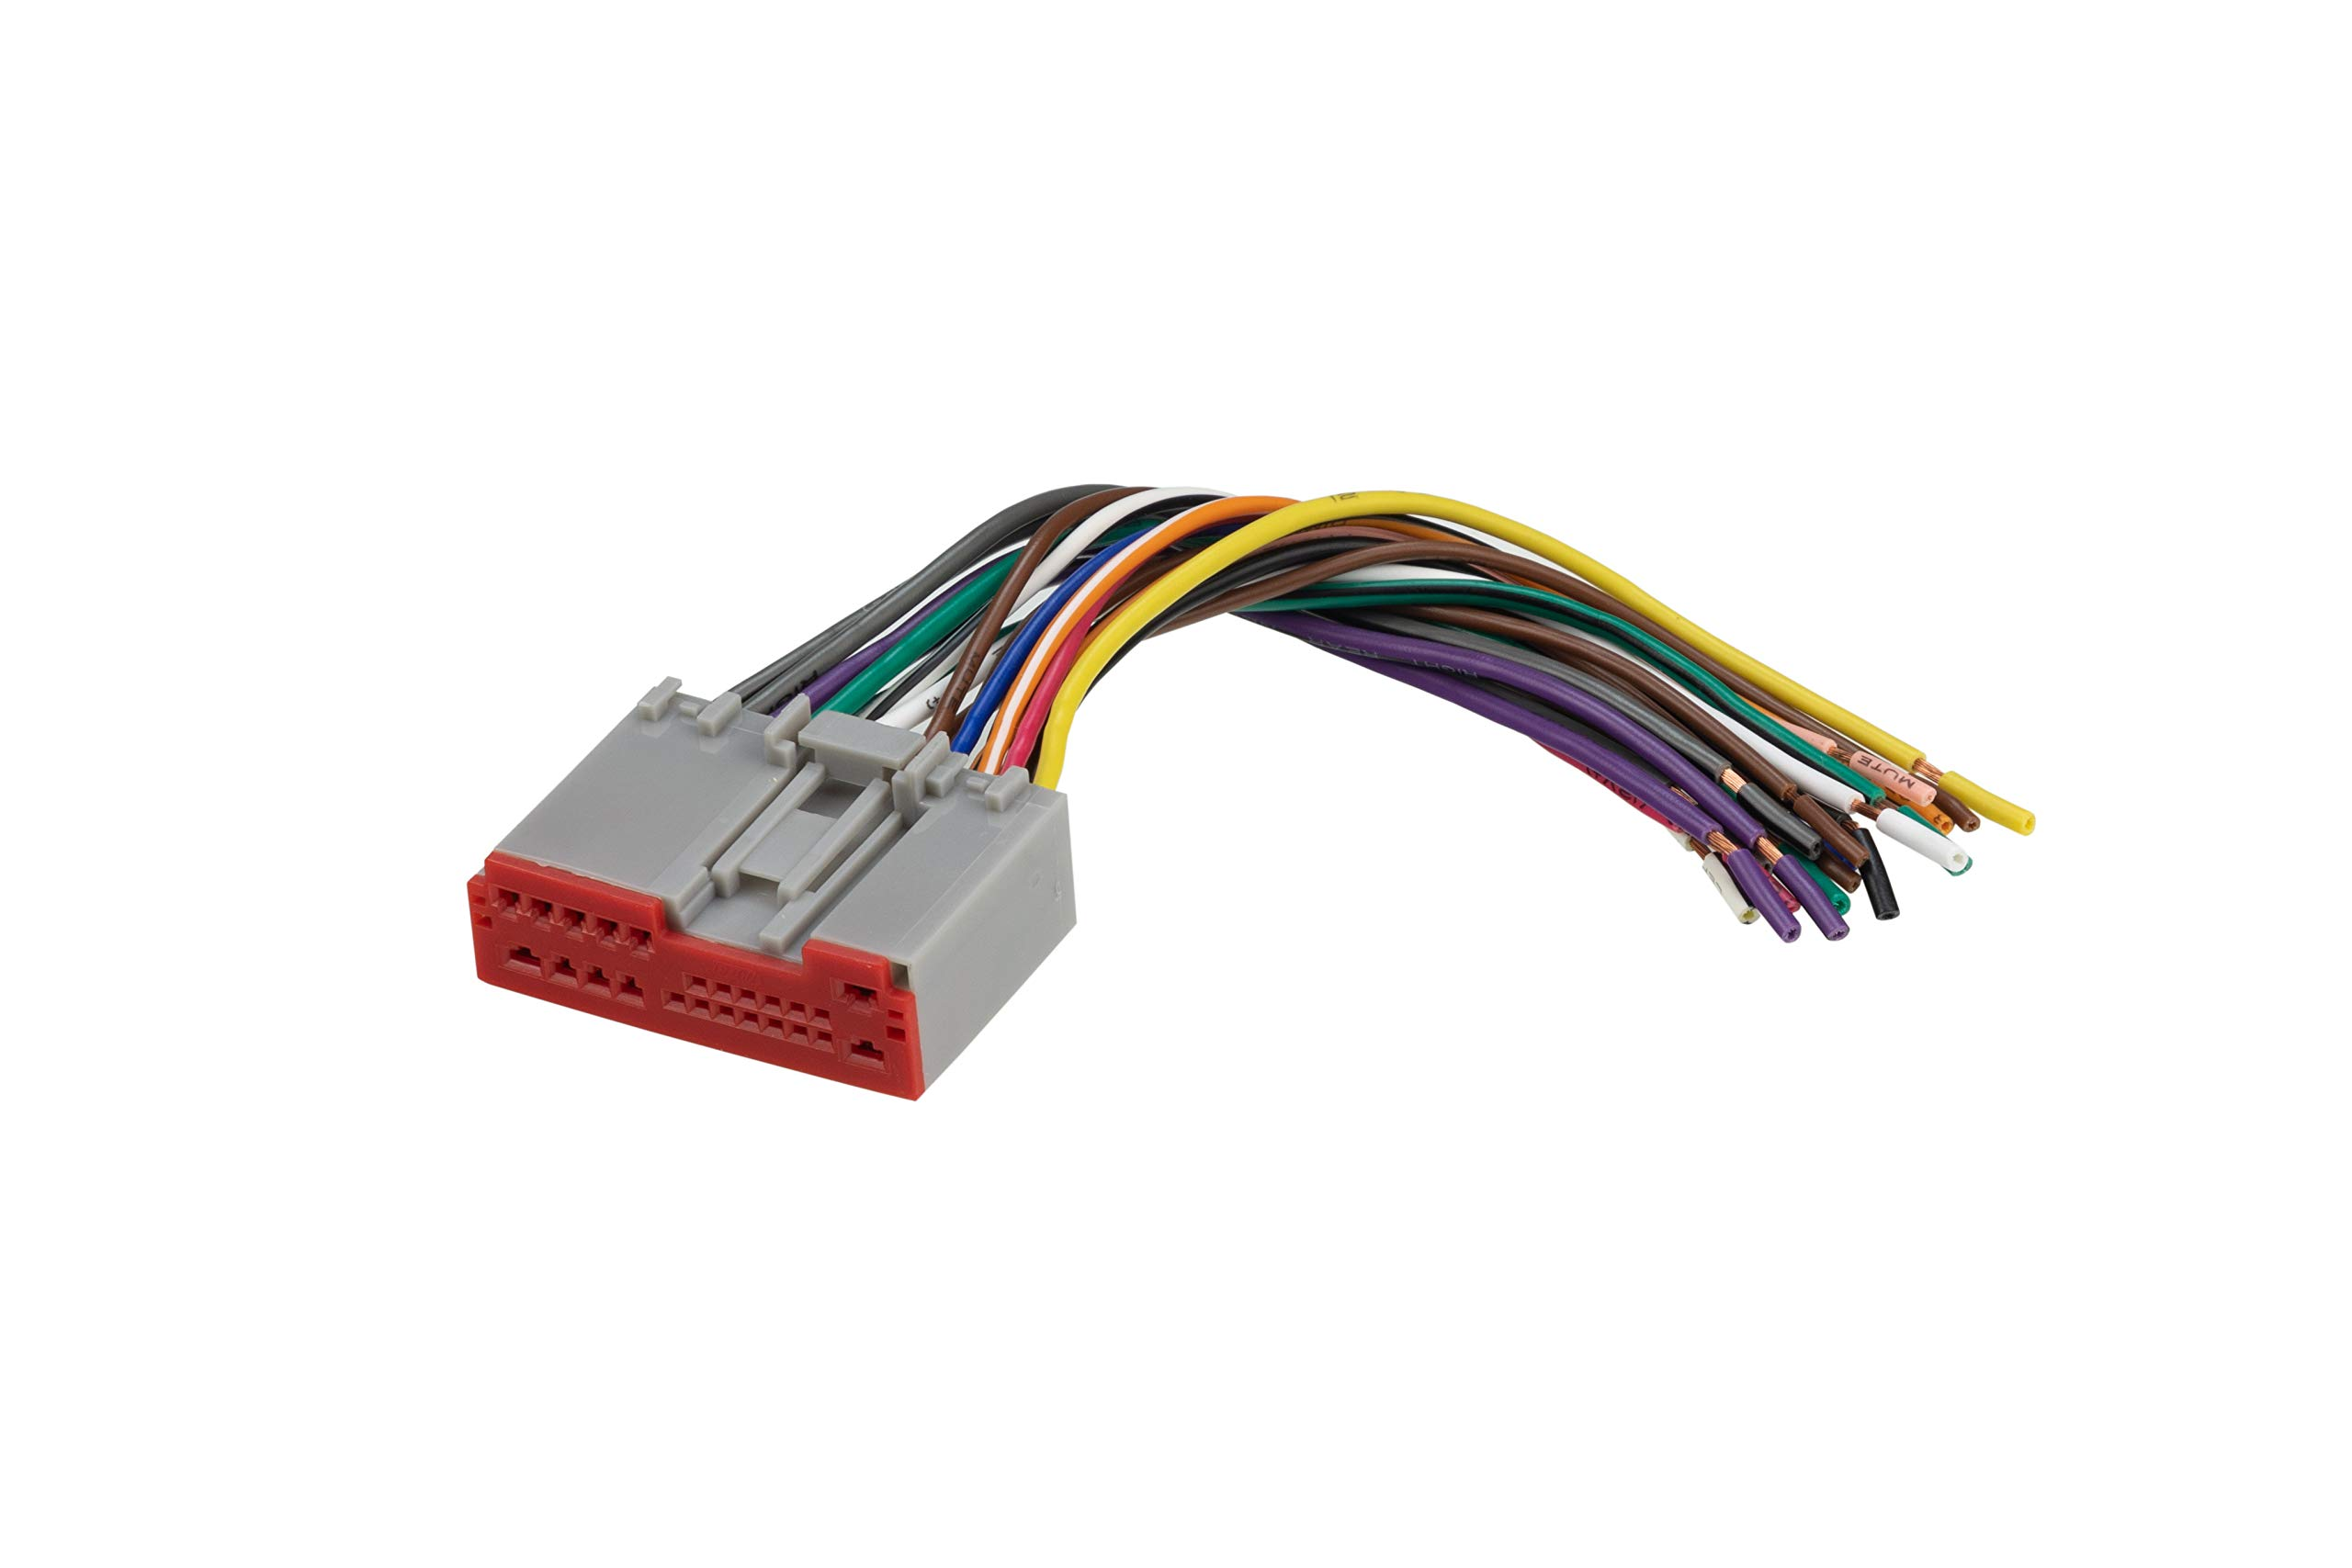 scosche fd23rb 2003-up ford replacement harness for factory stereo ...  online shopping in cayman islands - desertcart